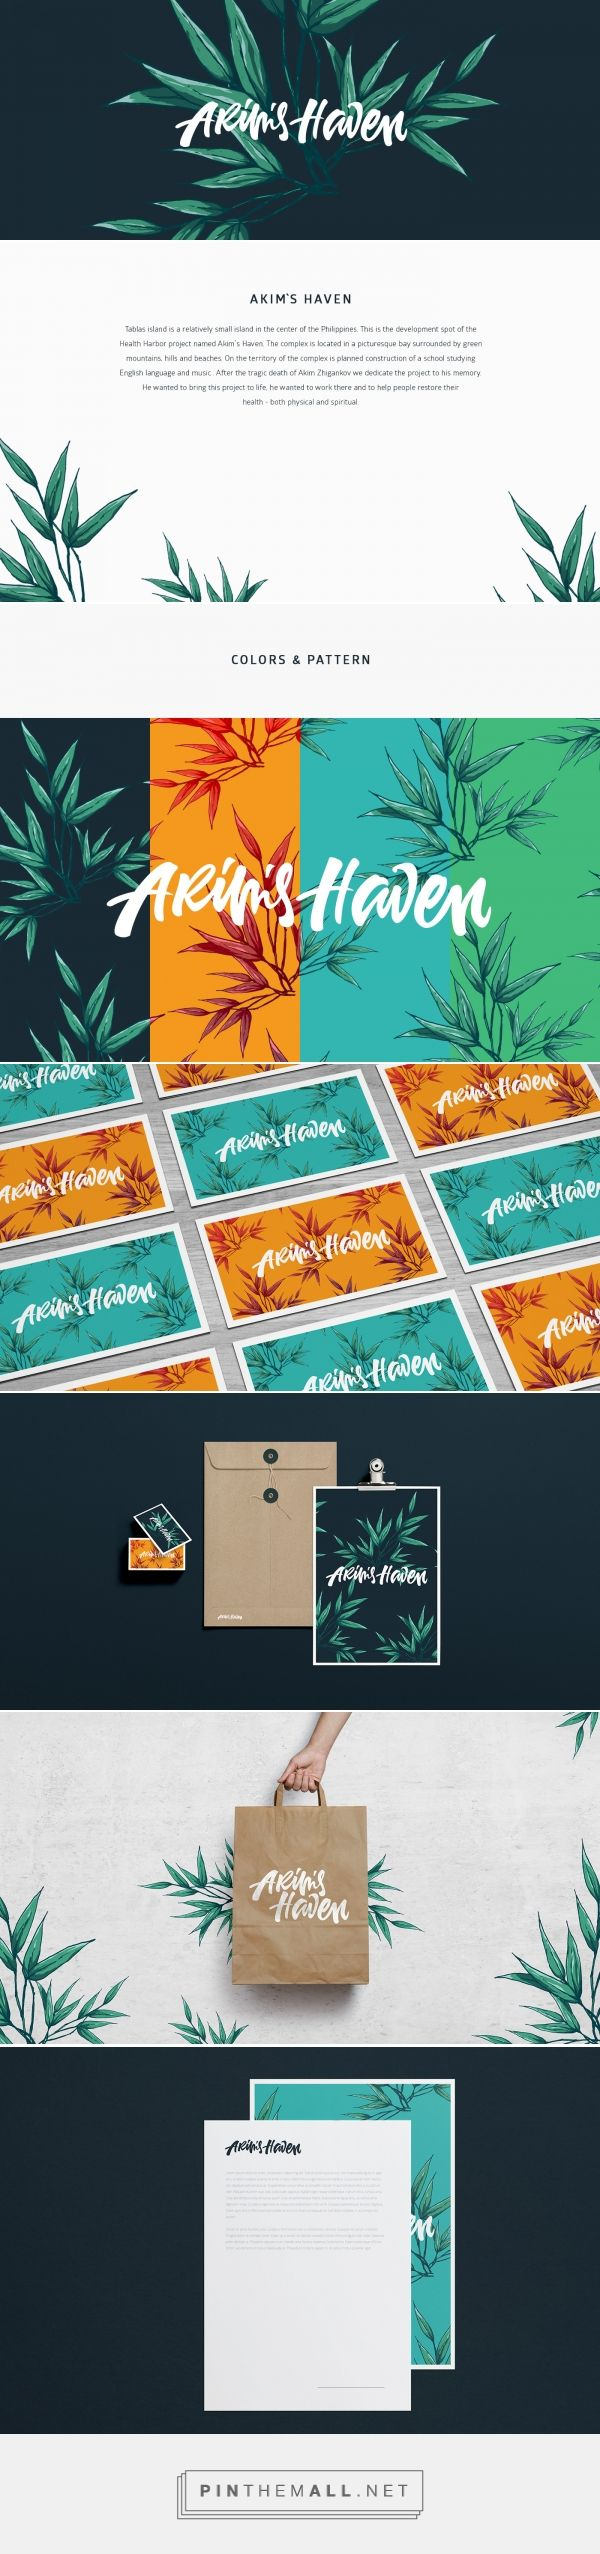 Akim`s Haven Mental and Spiritual Health Oasis Branding by Peter Zaitsev | Fivestar Branding Agency – Design and Branding Agency & Curated Inspiration Gallery